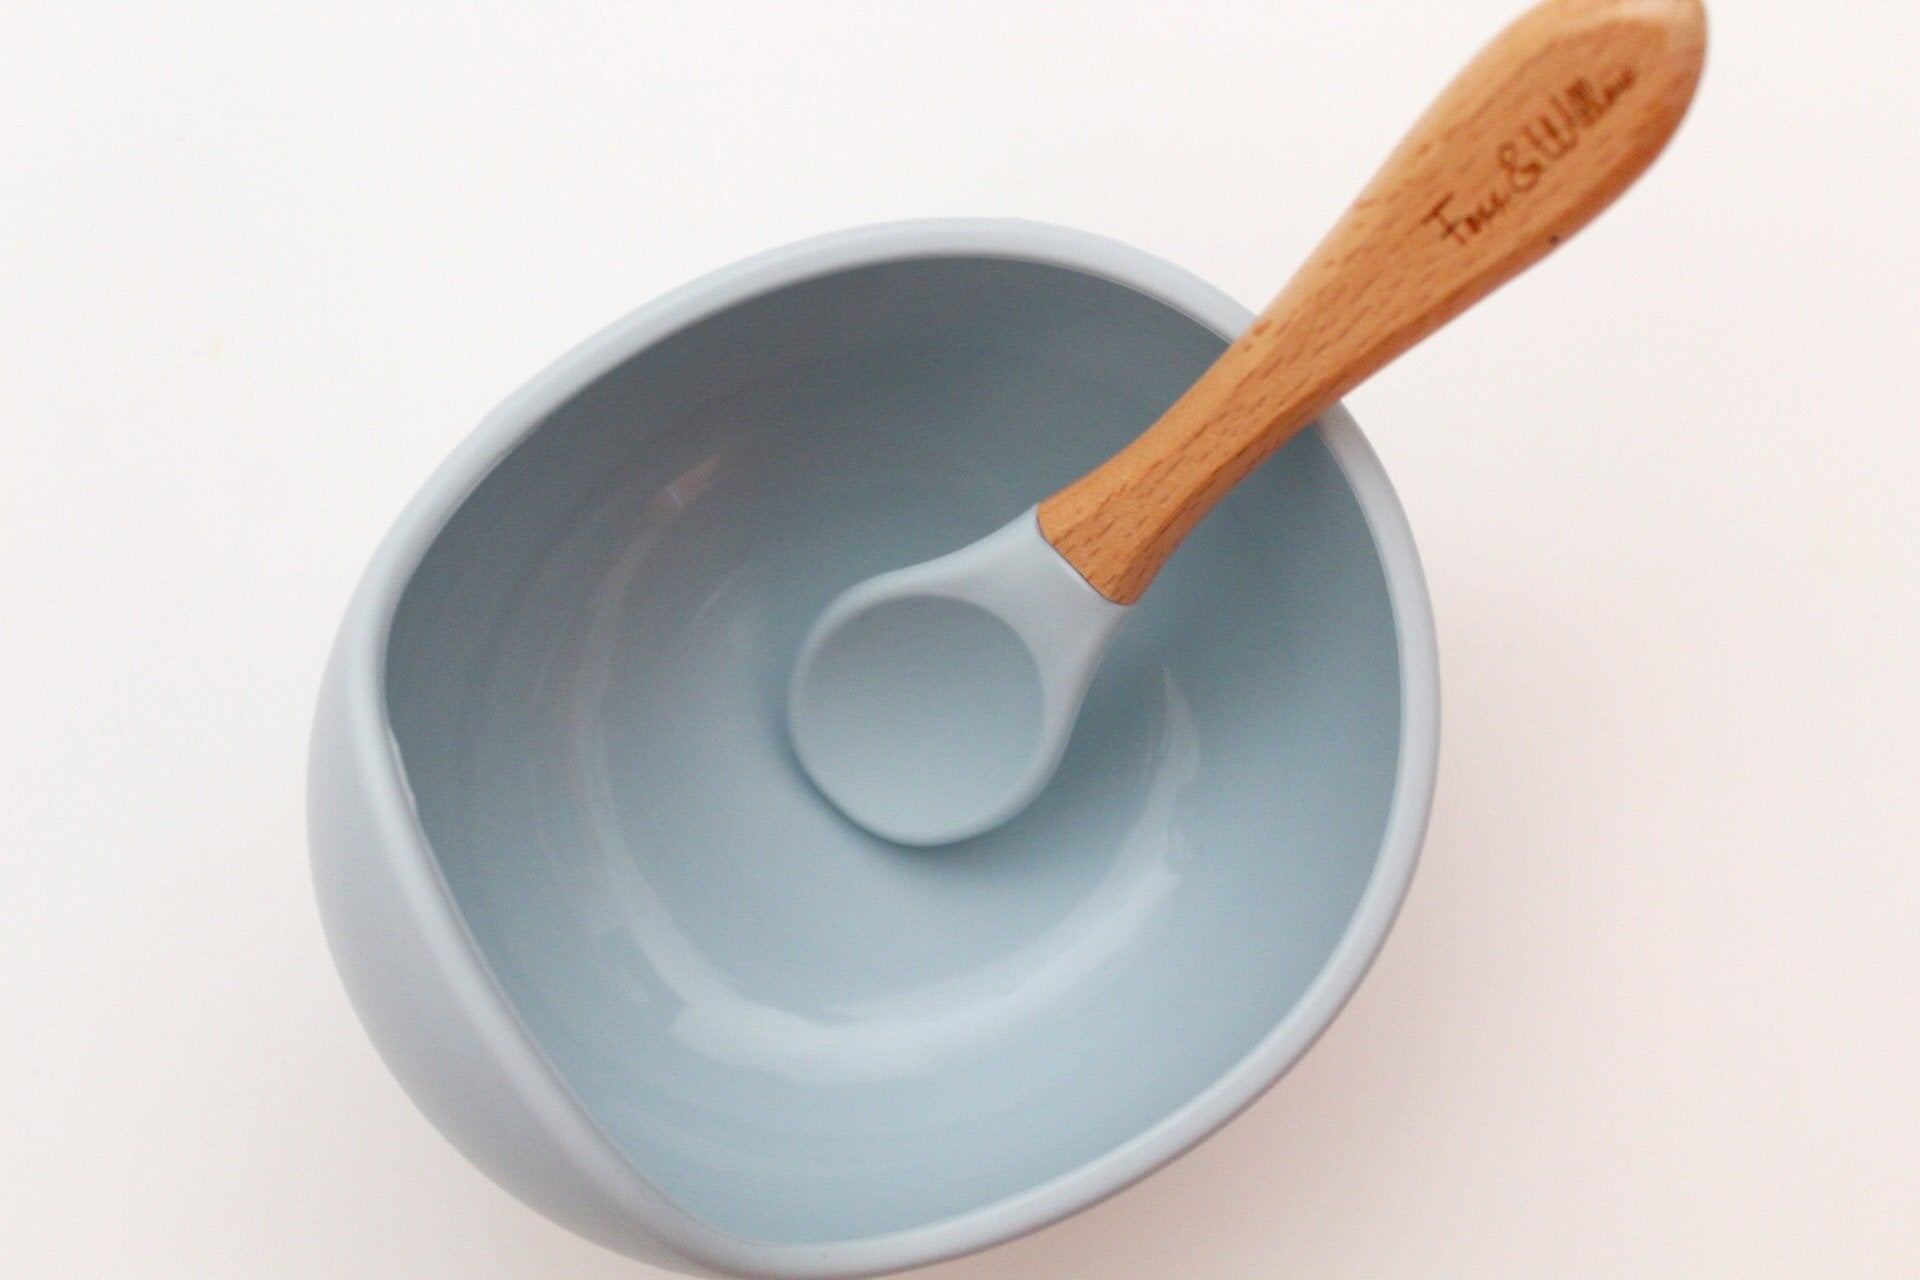 SILICONE BOWL & SPOON Dusty Blue